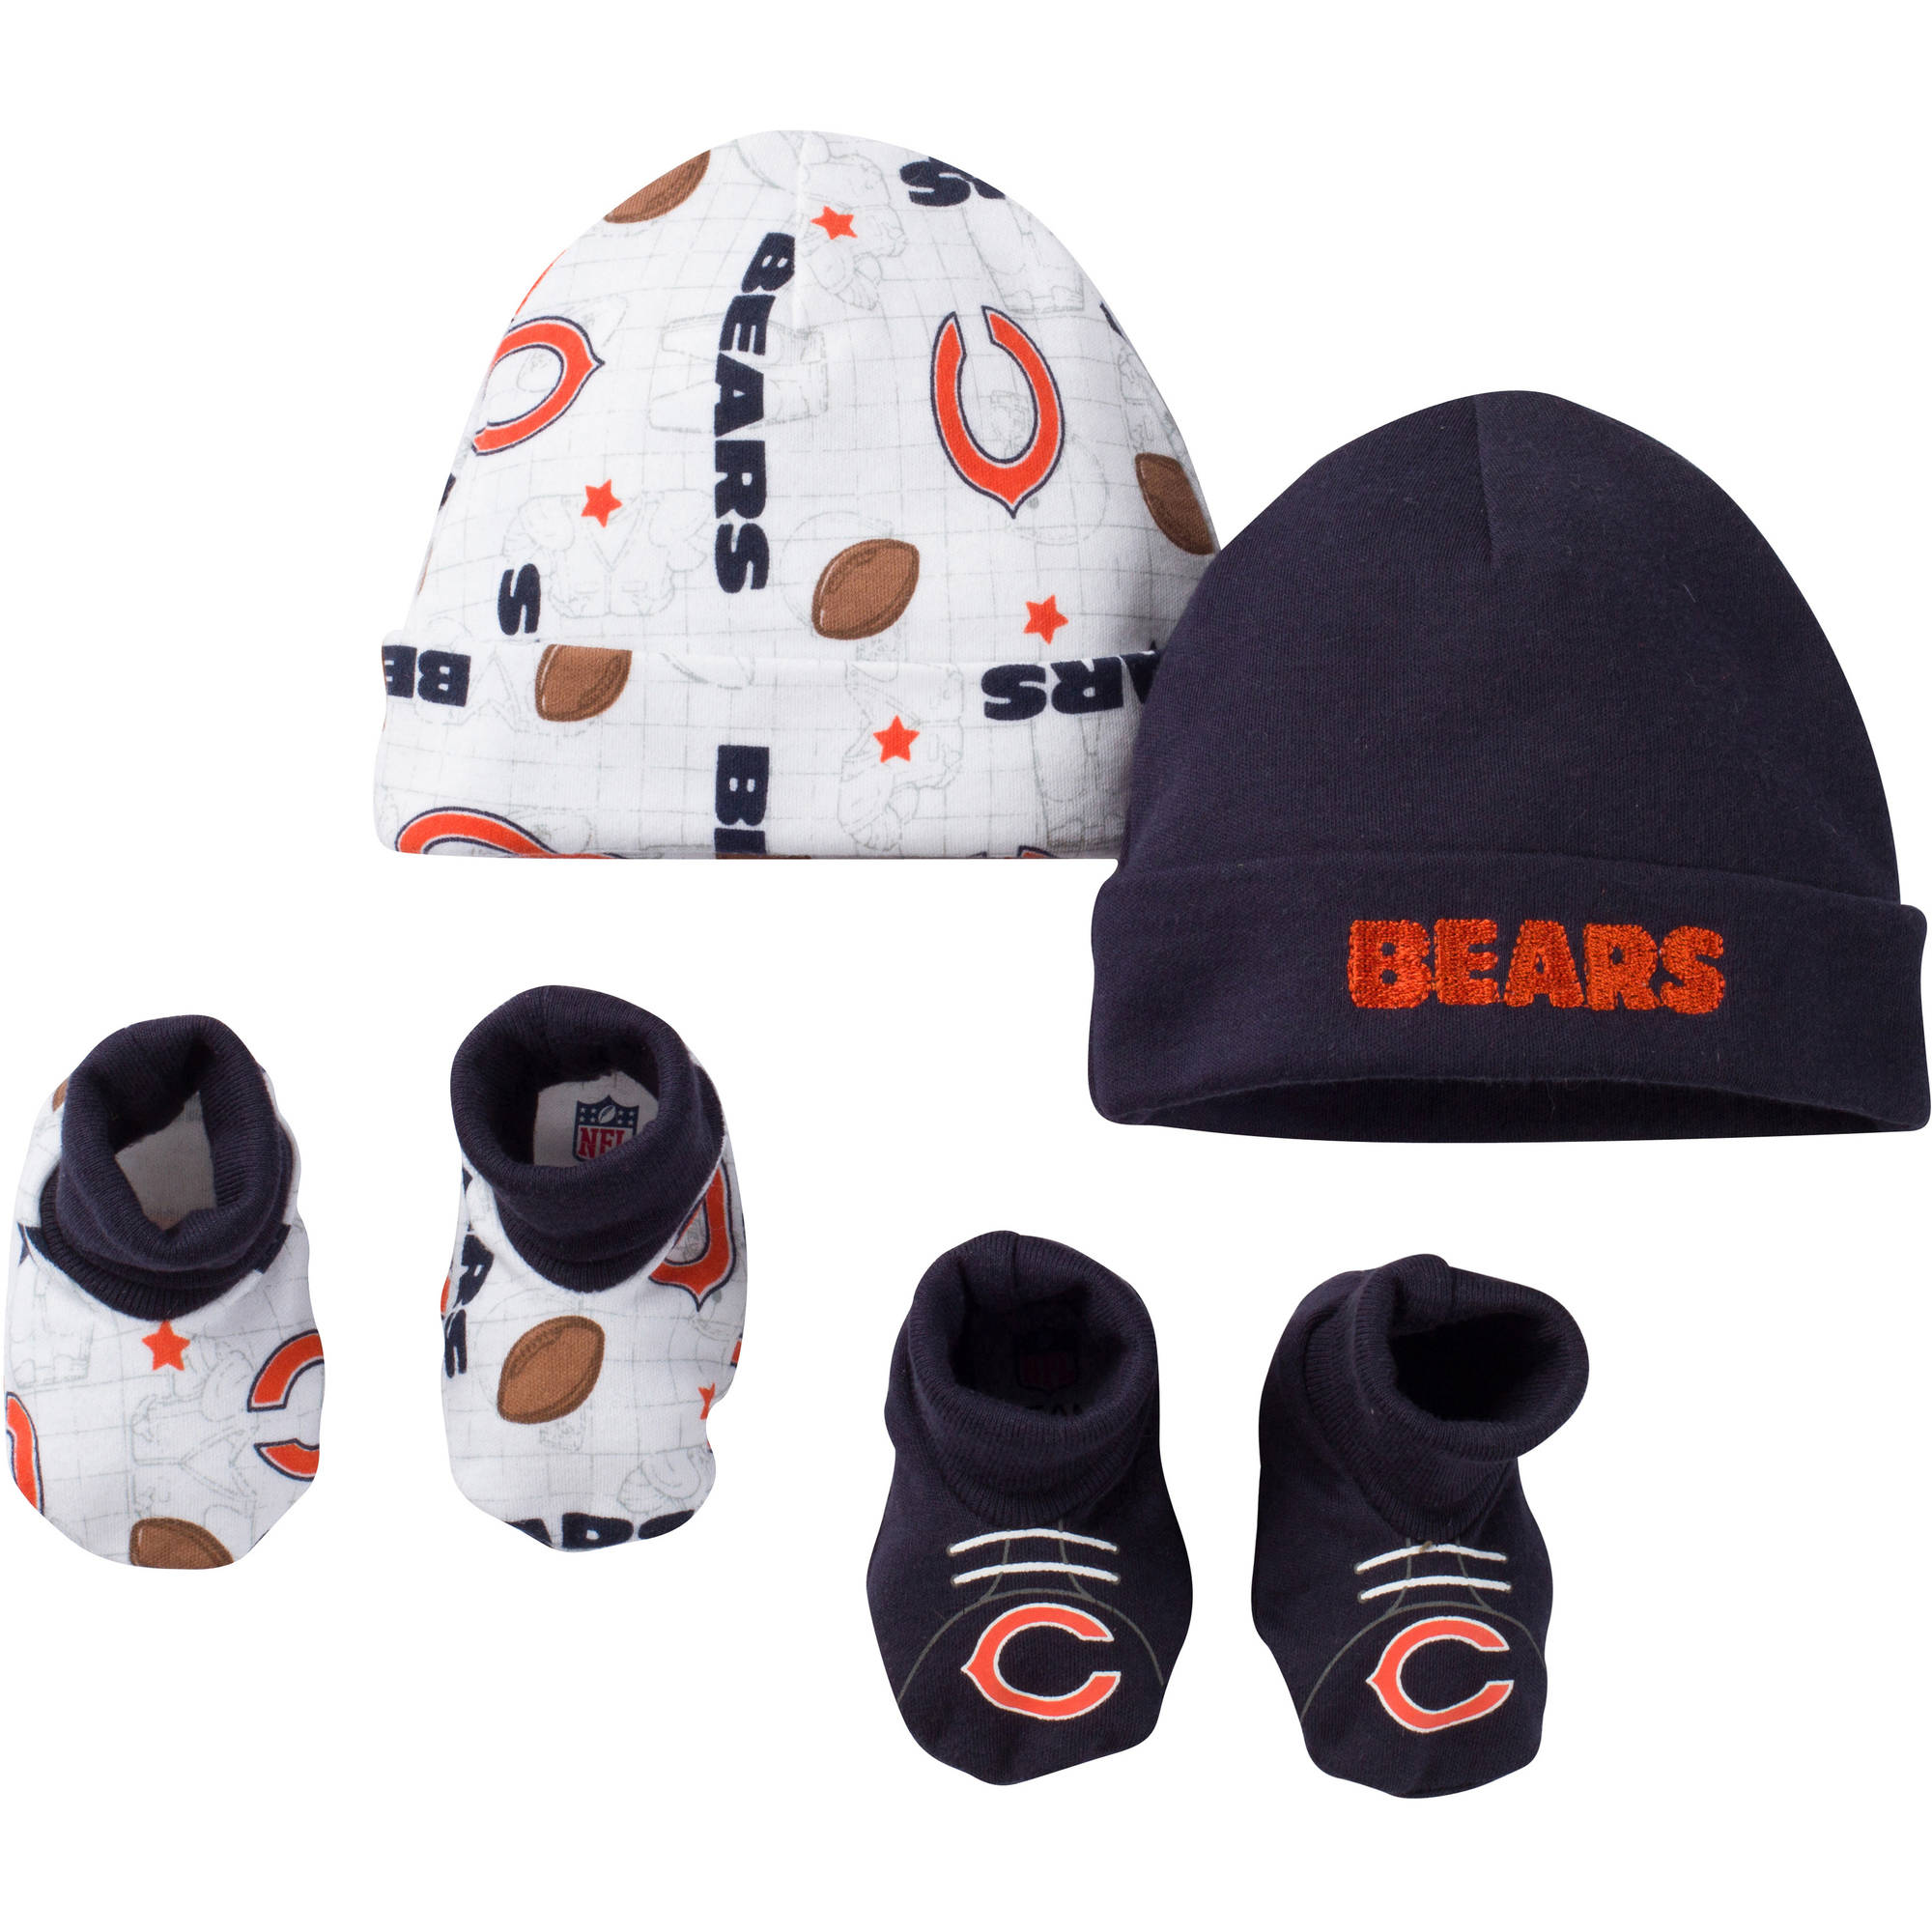 NFL Chicago Bears Baby Boys Accessory Set, 2 Caps and 2 Booties, 4-Piece